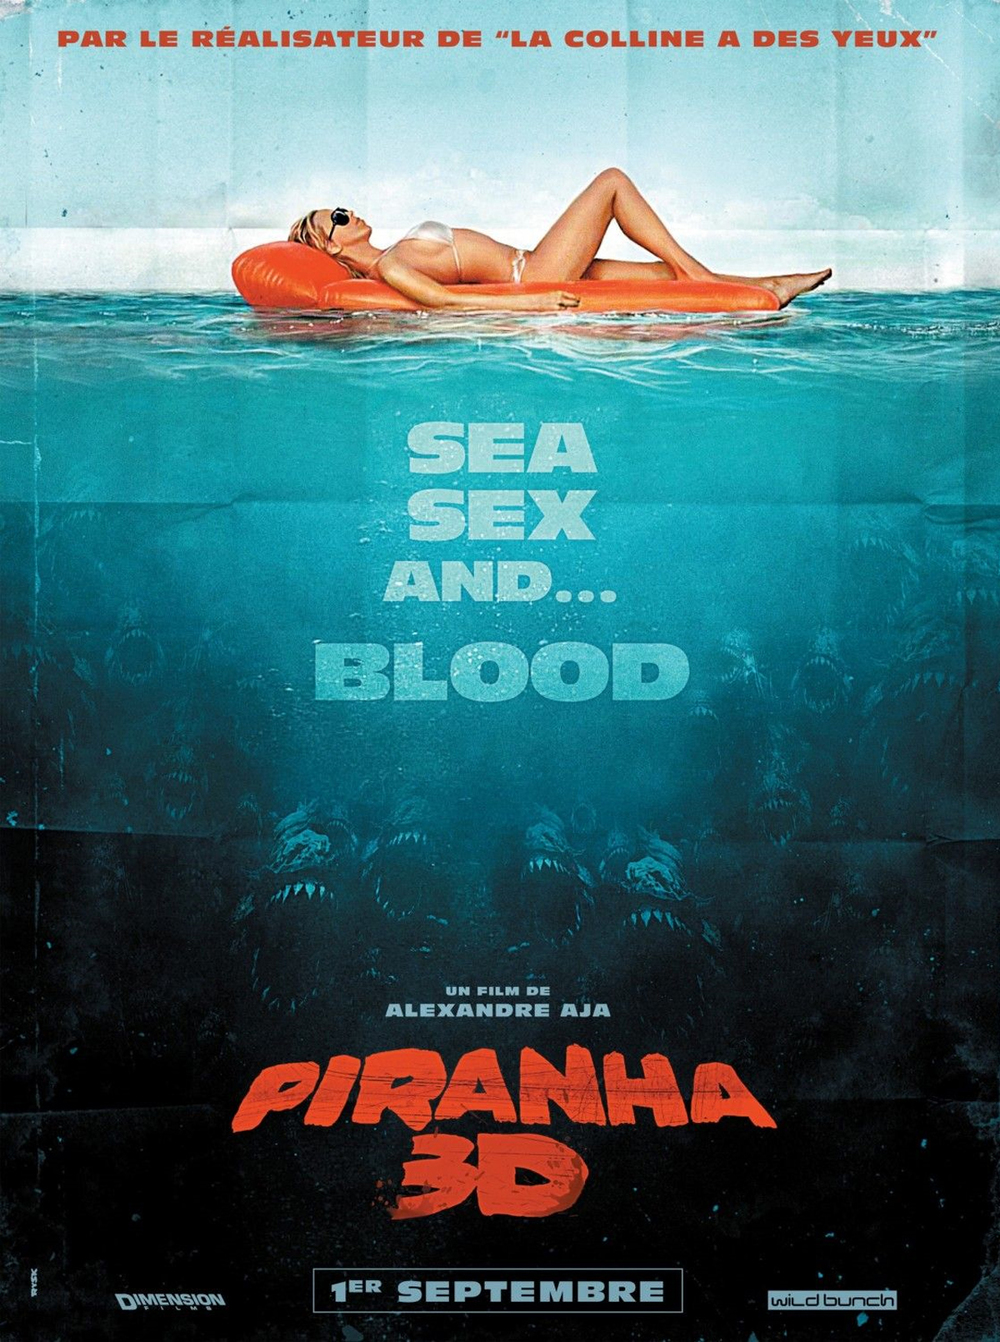 French poster for Piranha 3D